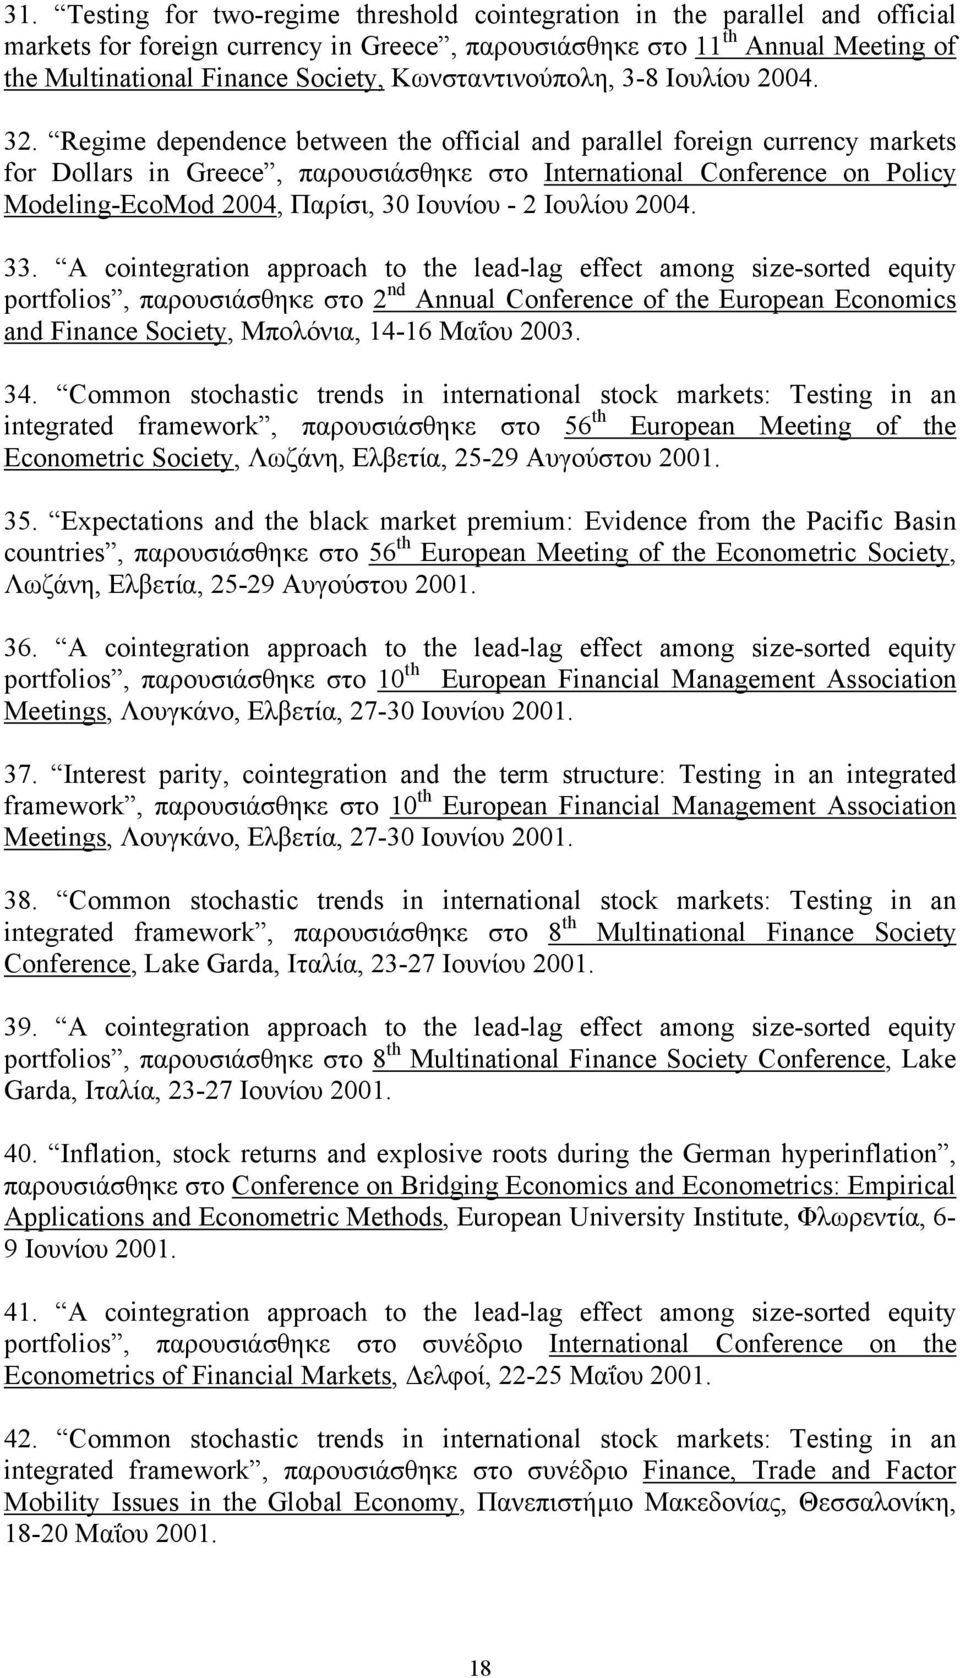 Regime dependence between the official and parallel foreign currency markets for Dollars in Greece, παρουσιάσθηκε στο International Conference on Policy Modeling-EcoMod 2004, Παρίσι, 30 Ιουνίου - 2